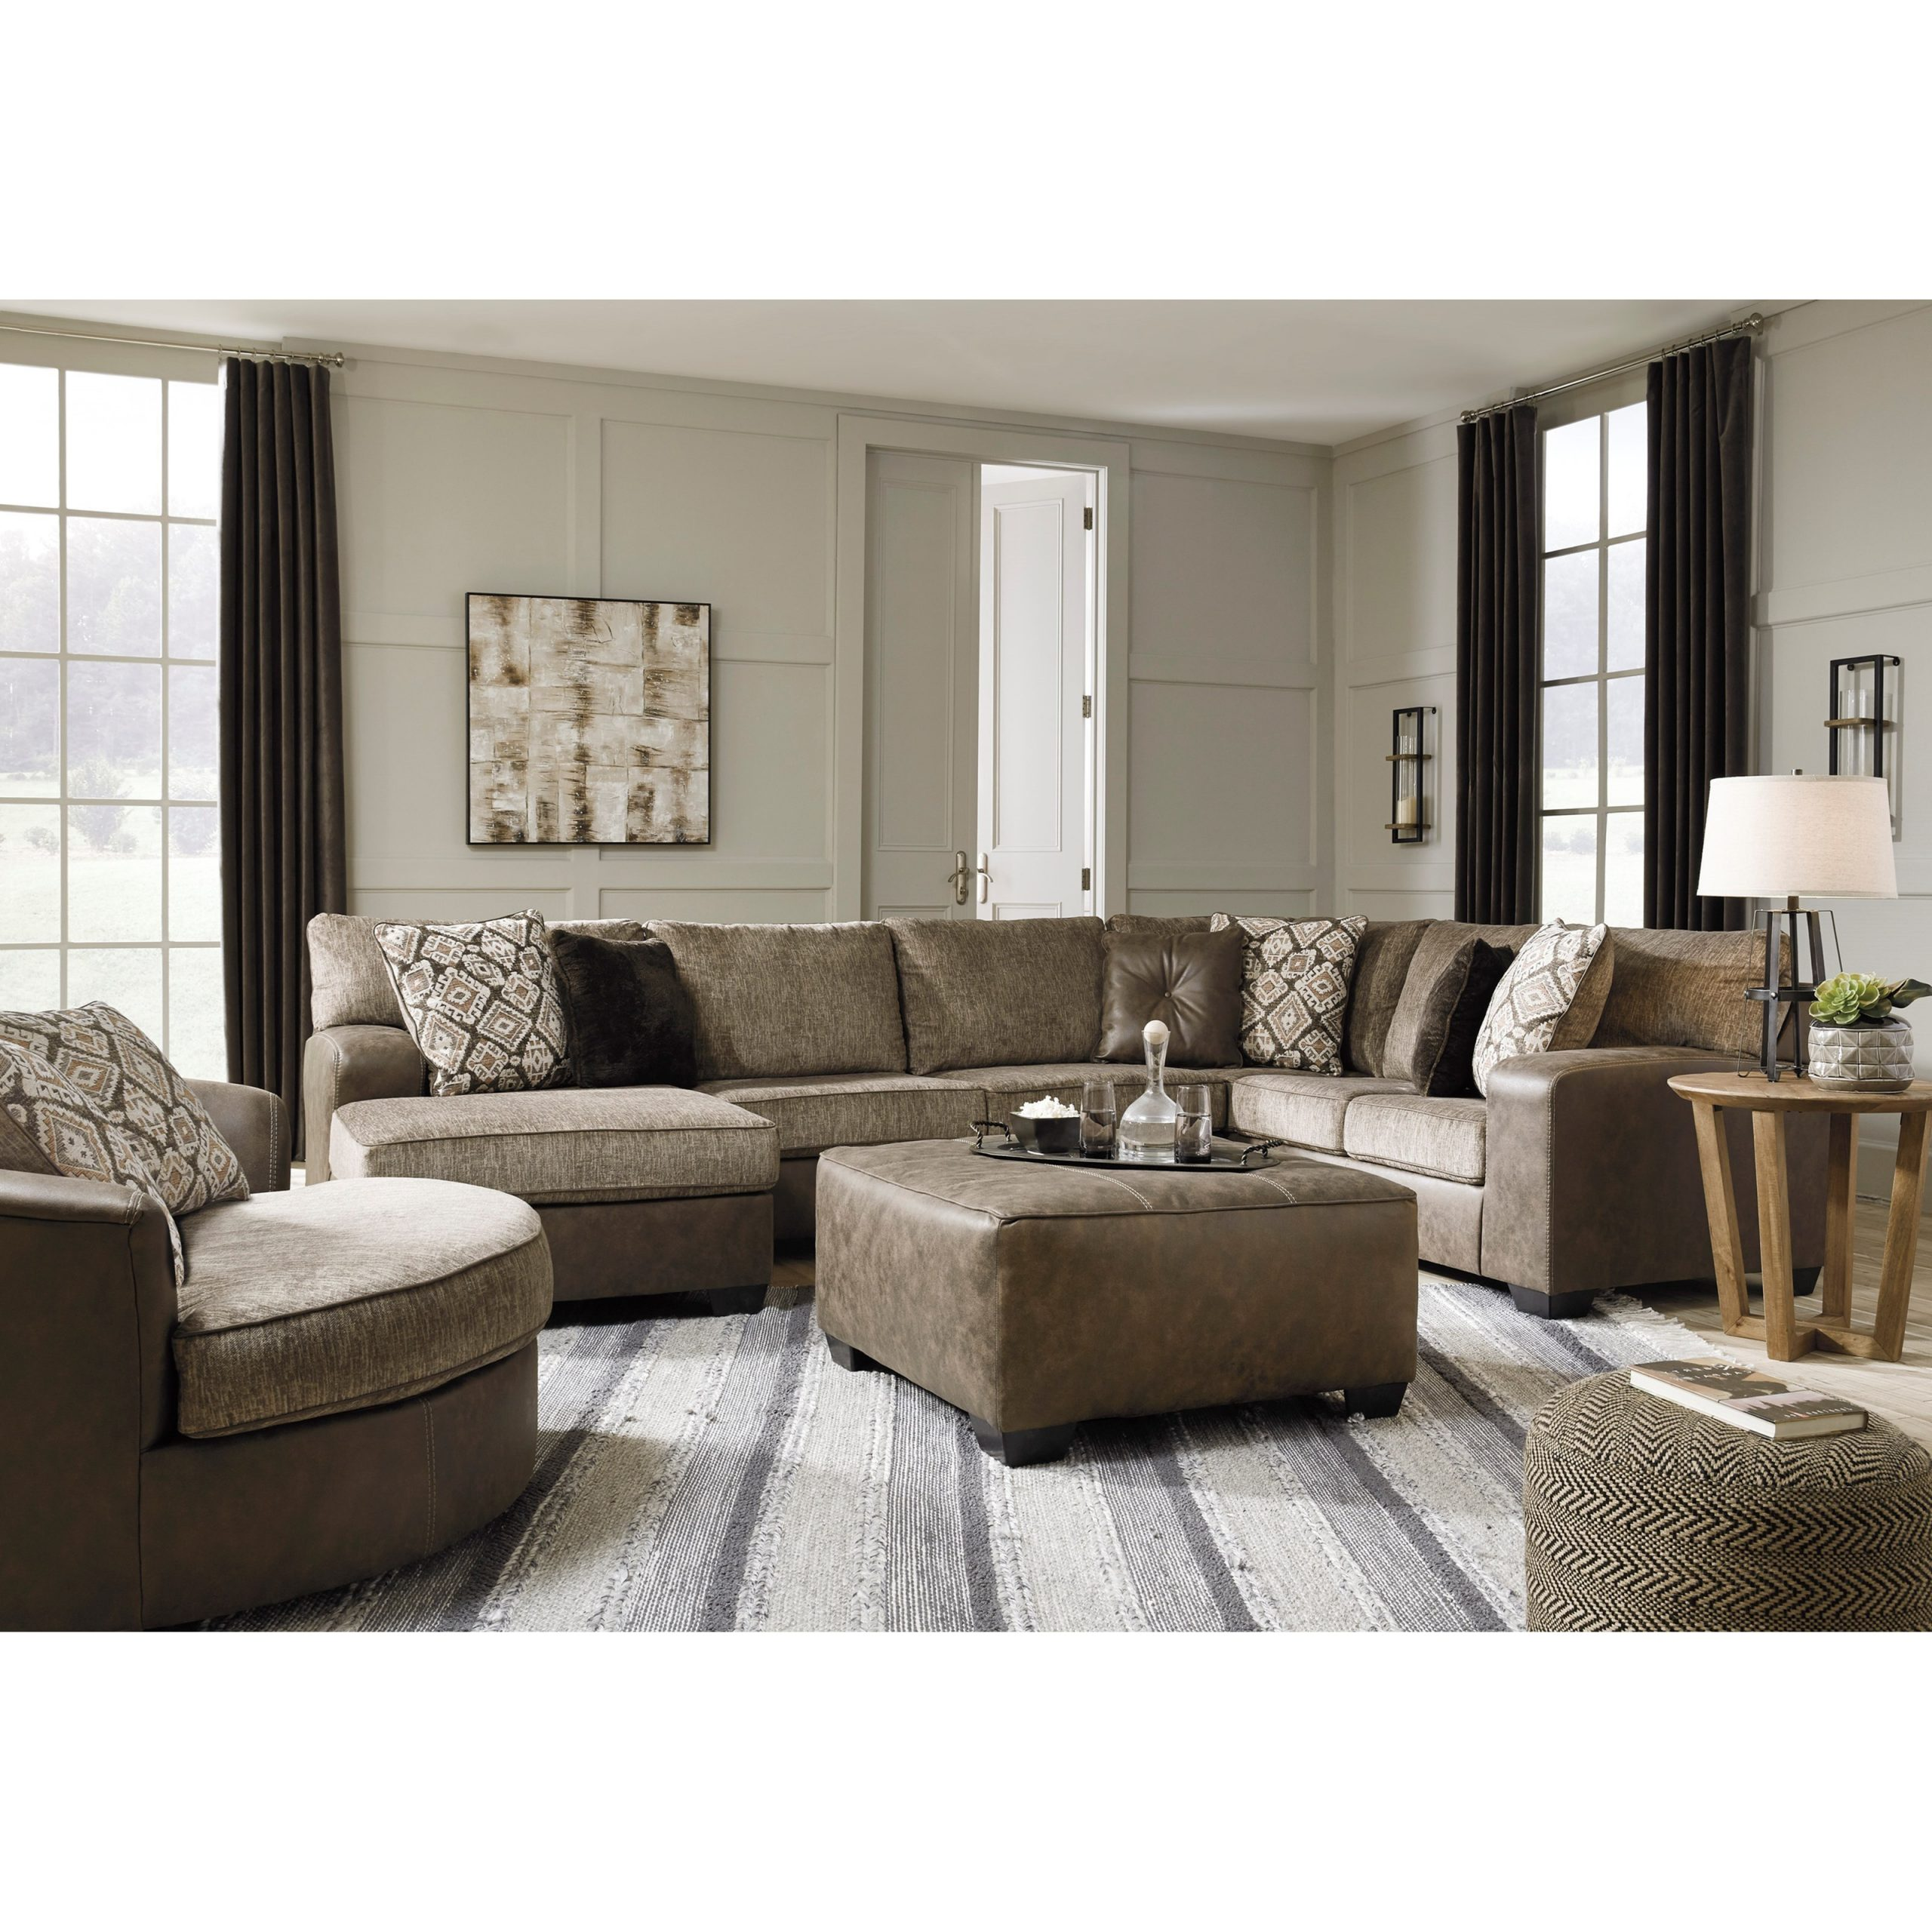 3Pc Miles Leather Sectional Sofas With Chaise Within Newest Benchcraft Abalone Brown Faux Leather/Fabric 3 Piece (View 15 of 25)